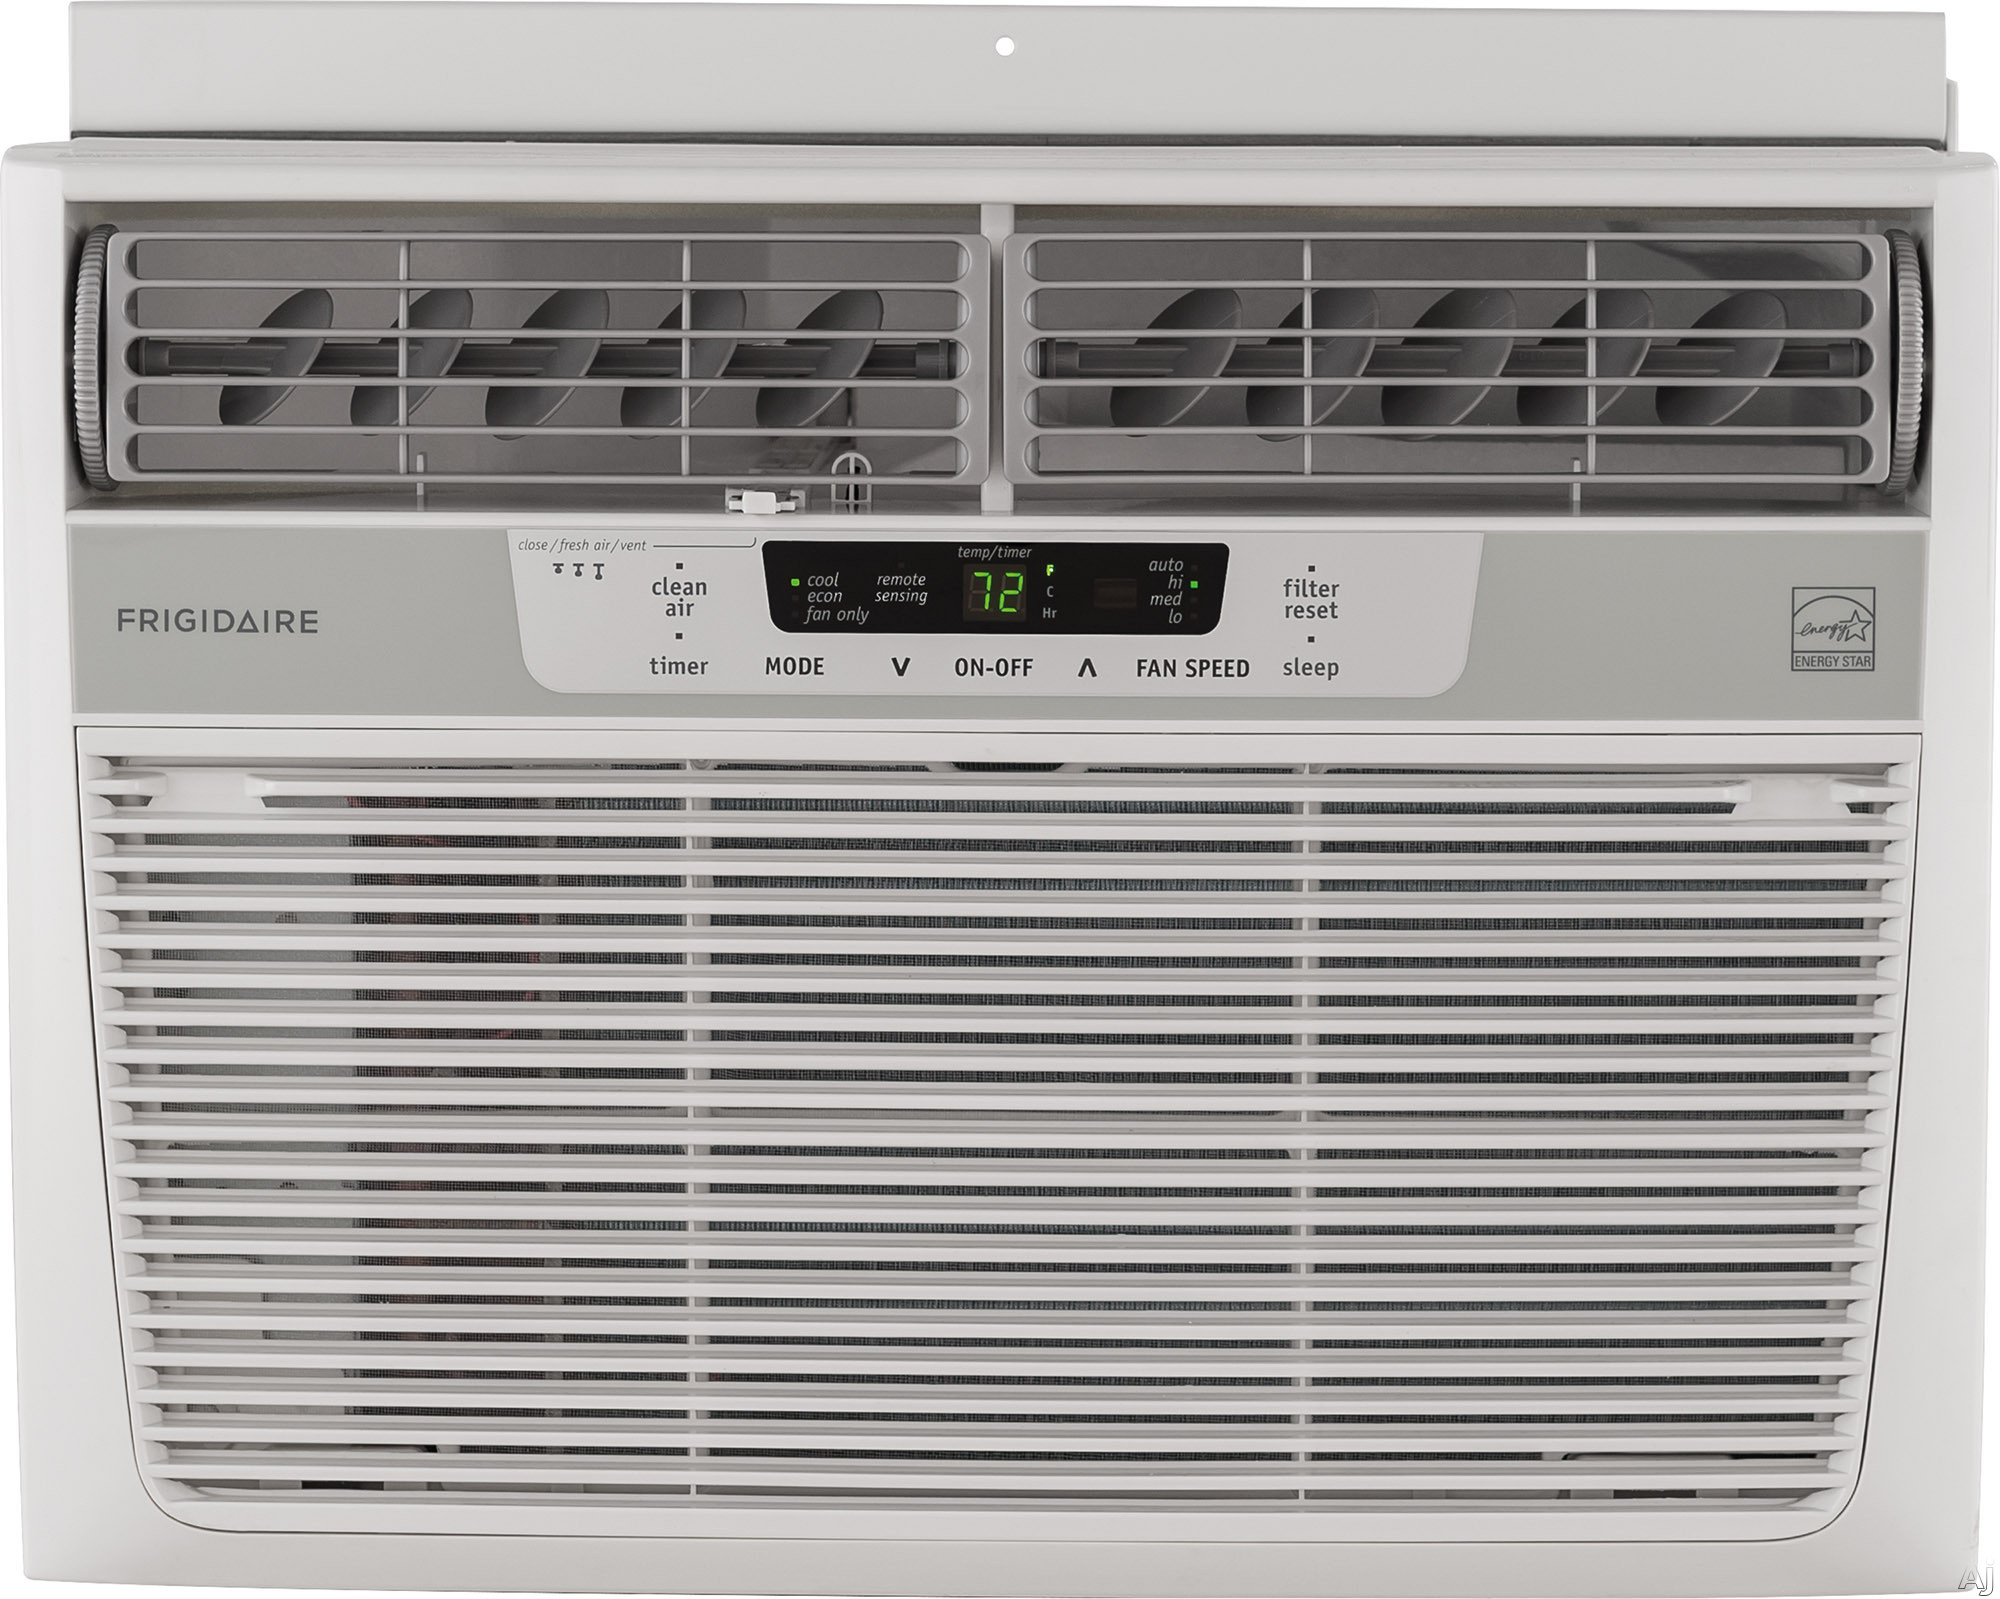 Frigidaire FFRE1033S1 10 000 BTU Compact Room Air Conditioner with 285 CFM 3 Fan Speeds Effortless Remote Temperature Control 24 Hour Timer Clean Air Ionizer Effortless Clean Filter Energy Saver Mode